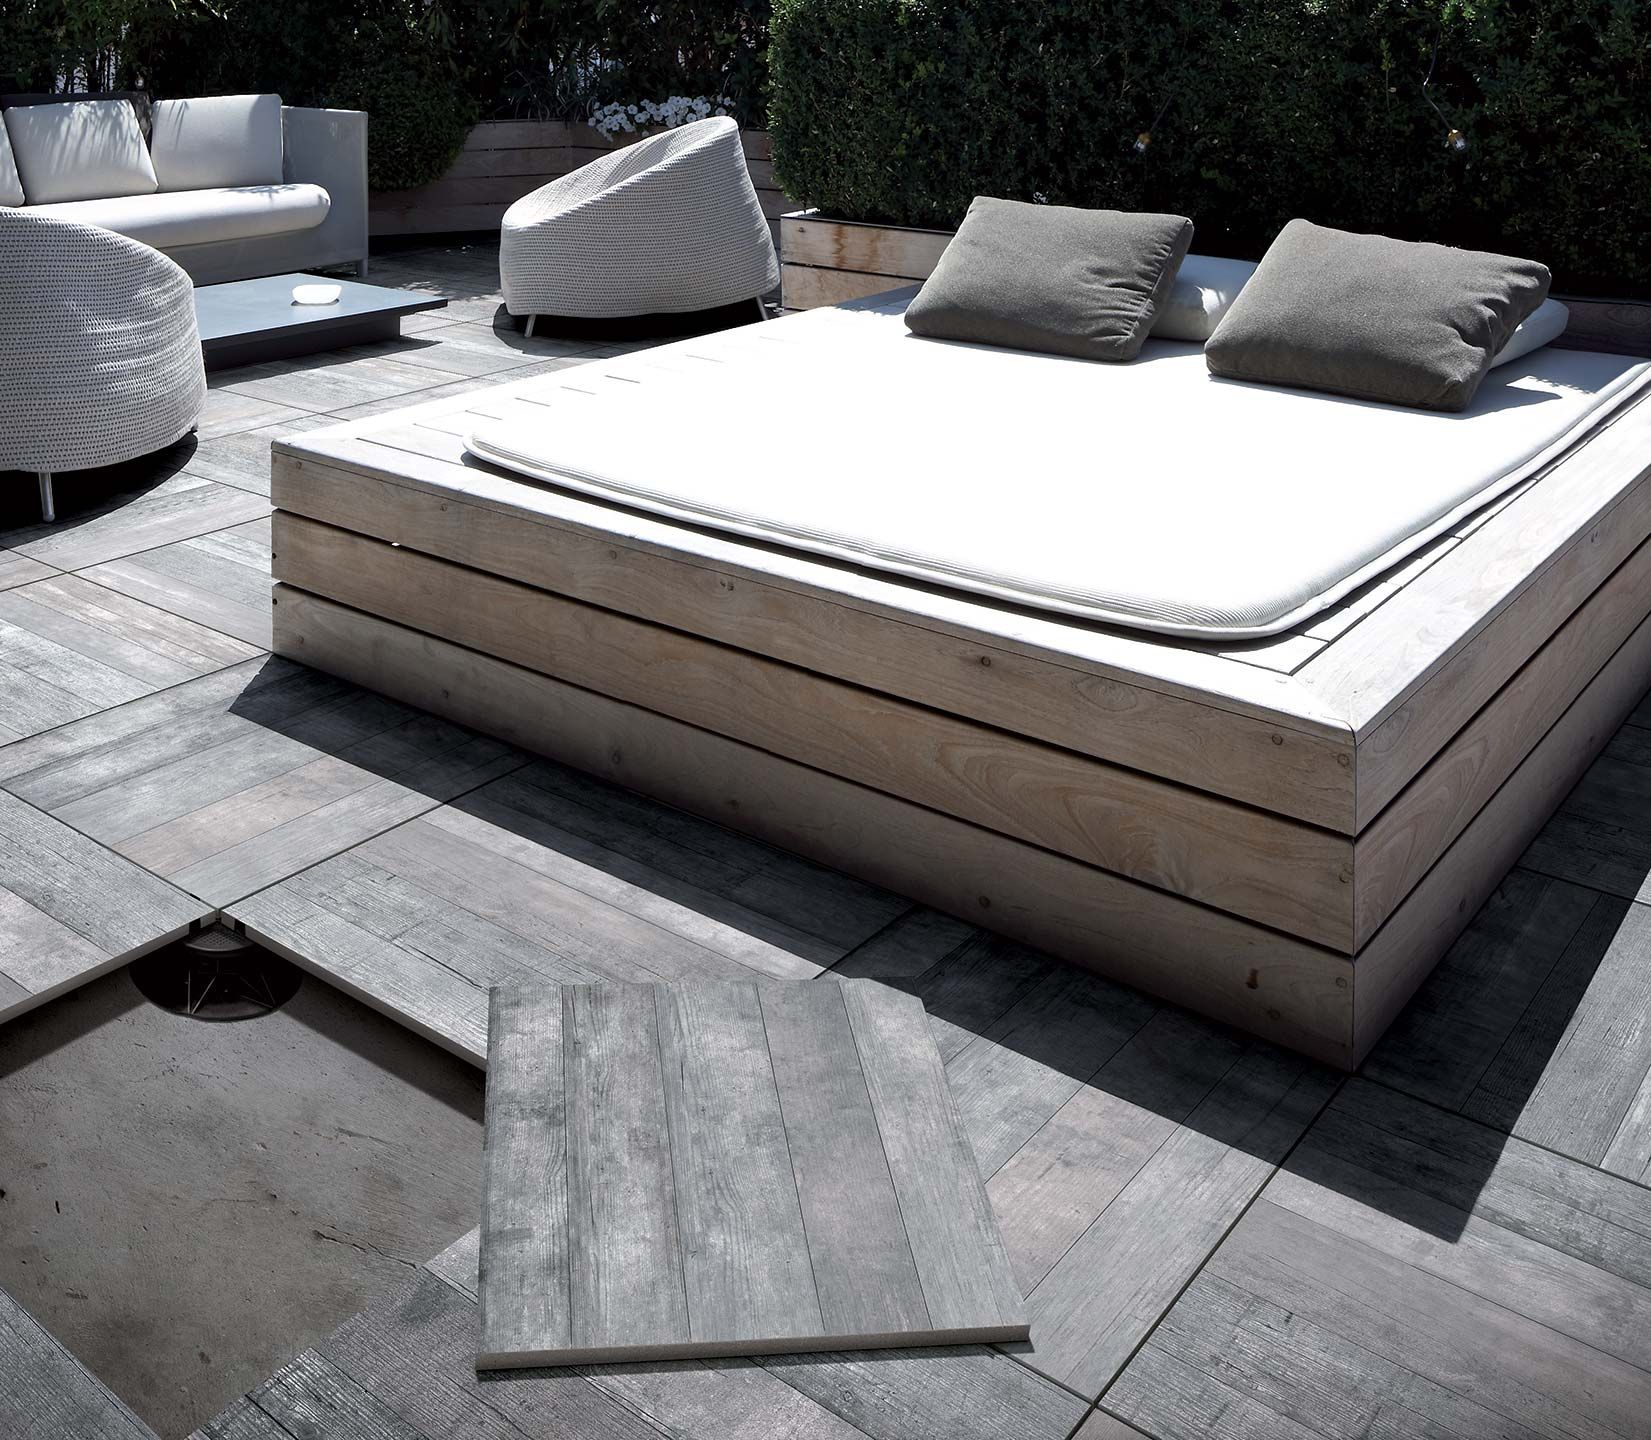 Self laying wood effect floor tiles for outside floors icon self laying wood effect floor tiles for outside floors icon outdoor dailygadgetfo Image collections